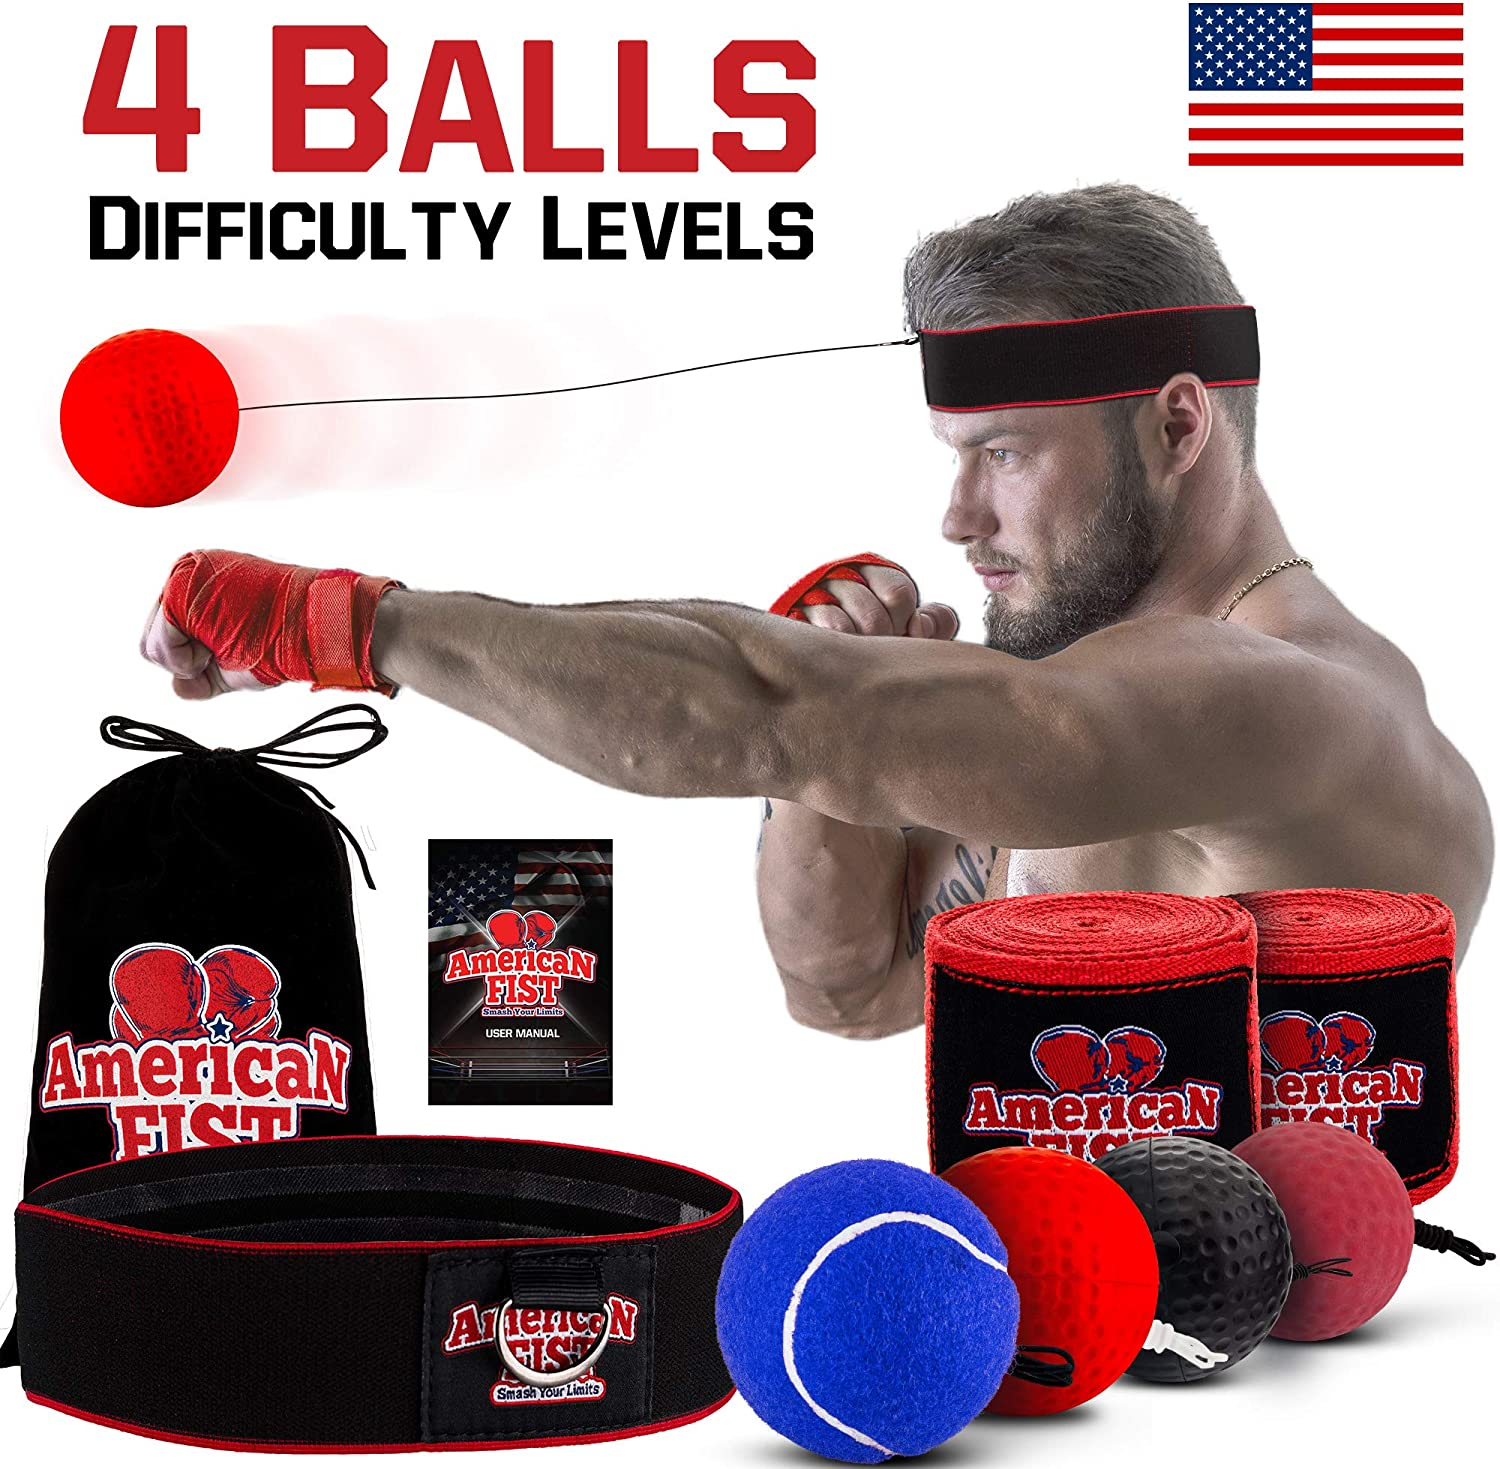 Boxing Reflex Ball Set, 4 Difficulty Level Training Balls On String, Punching Fight React Head Ball with Headband, Speed Hand Eye Reaction and Coordination Boxing Equipment For Kids And Adults : Sports & Outdoors